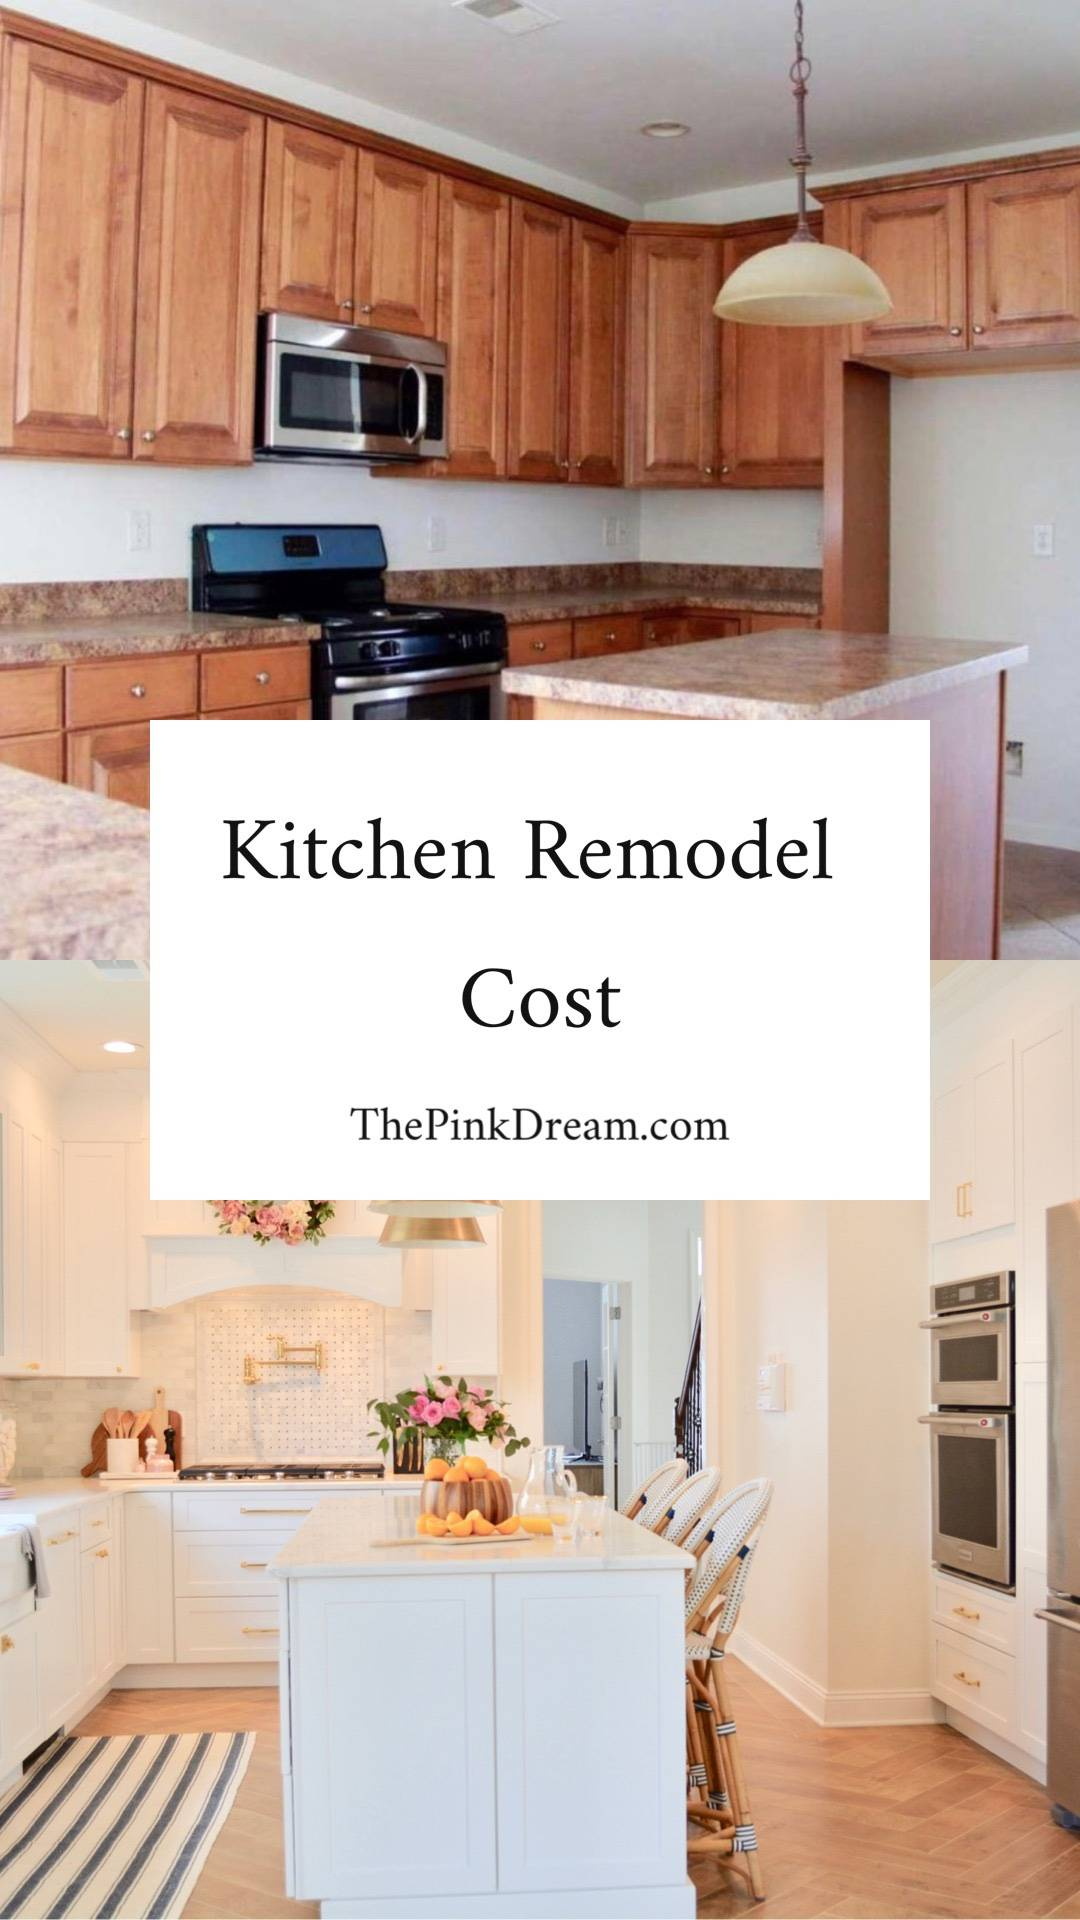 Our Kitchen Renovation Cost Breakdown + Where to Save